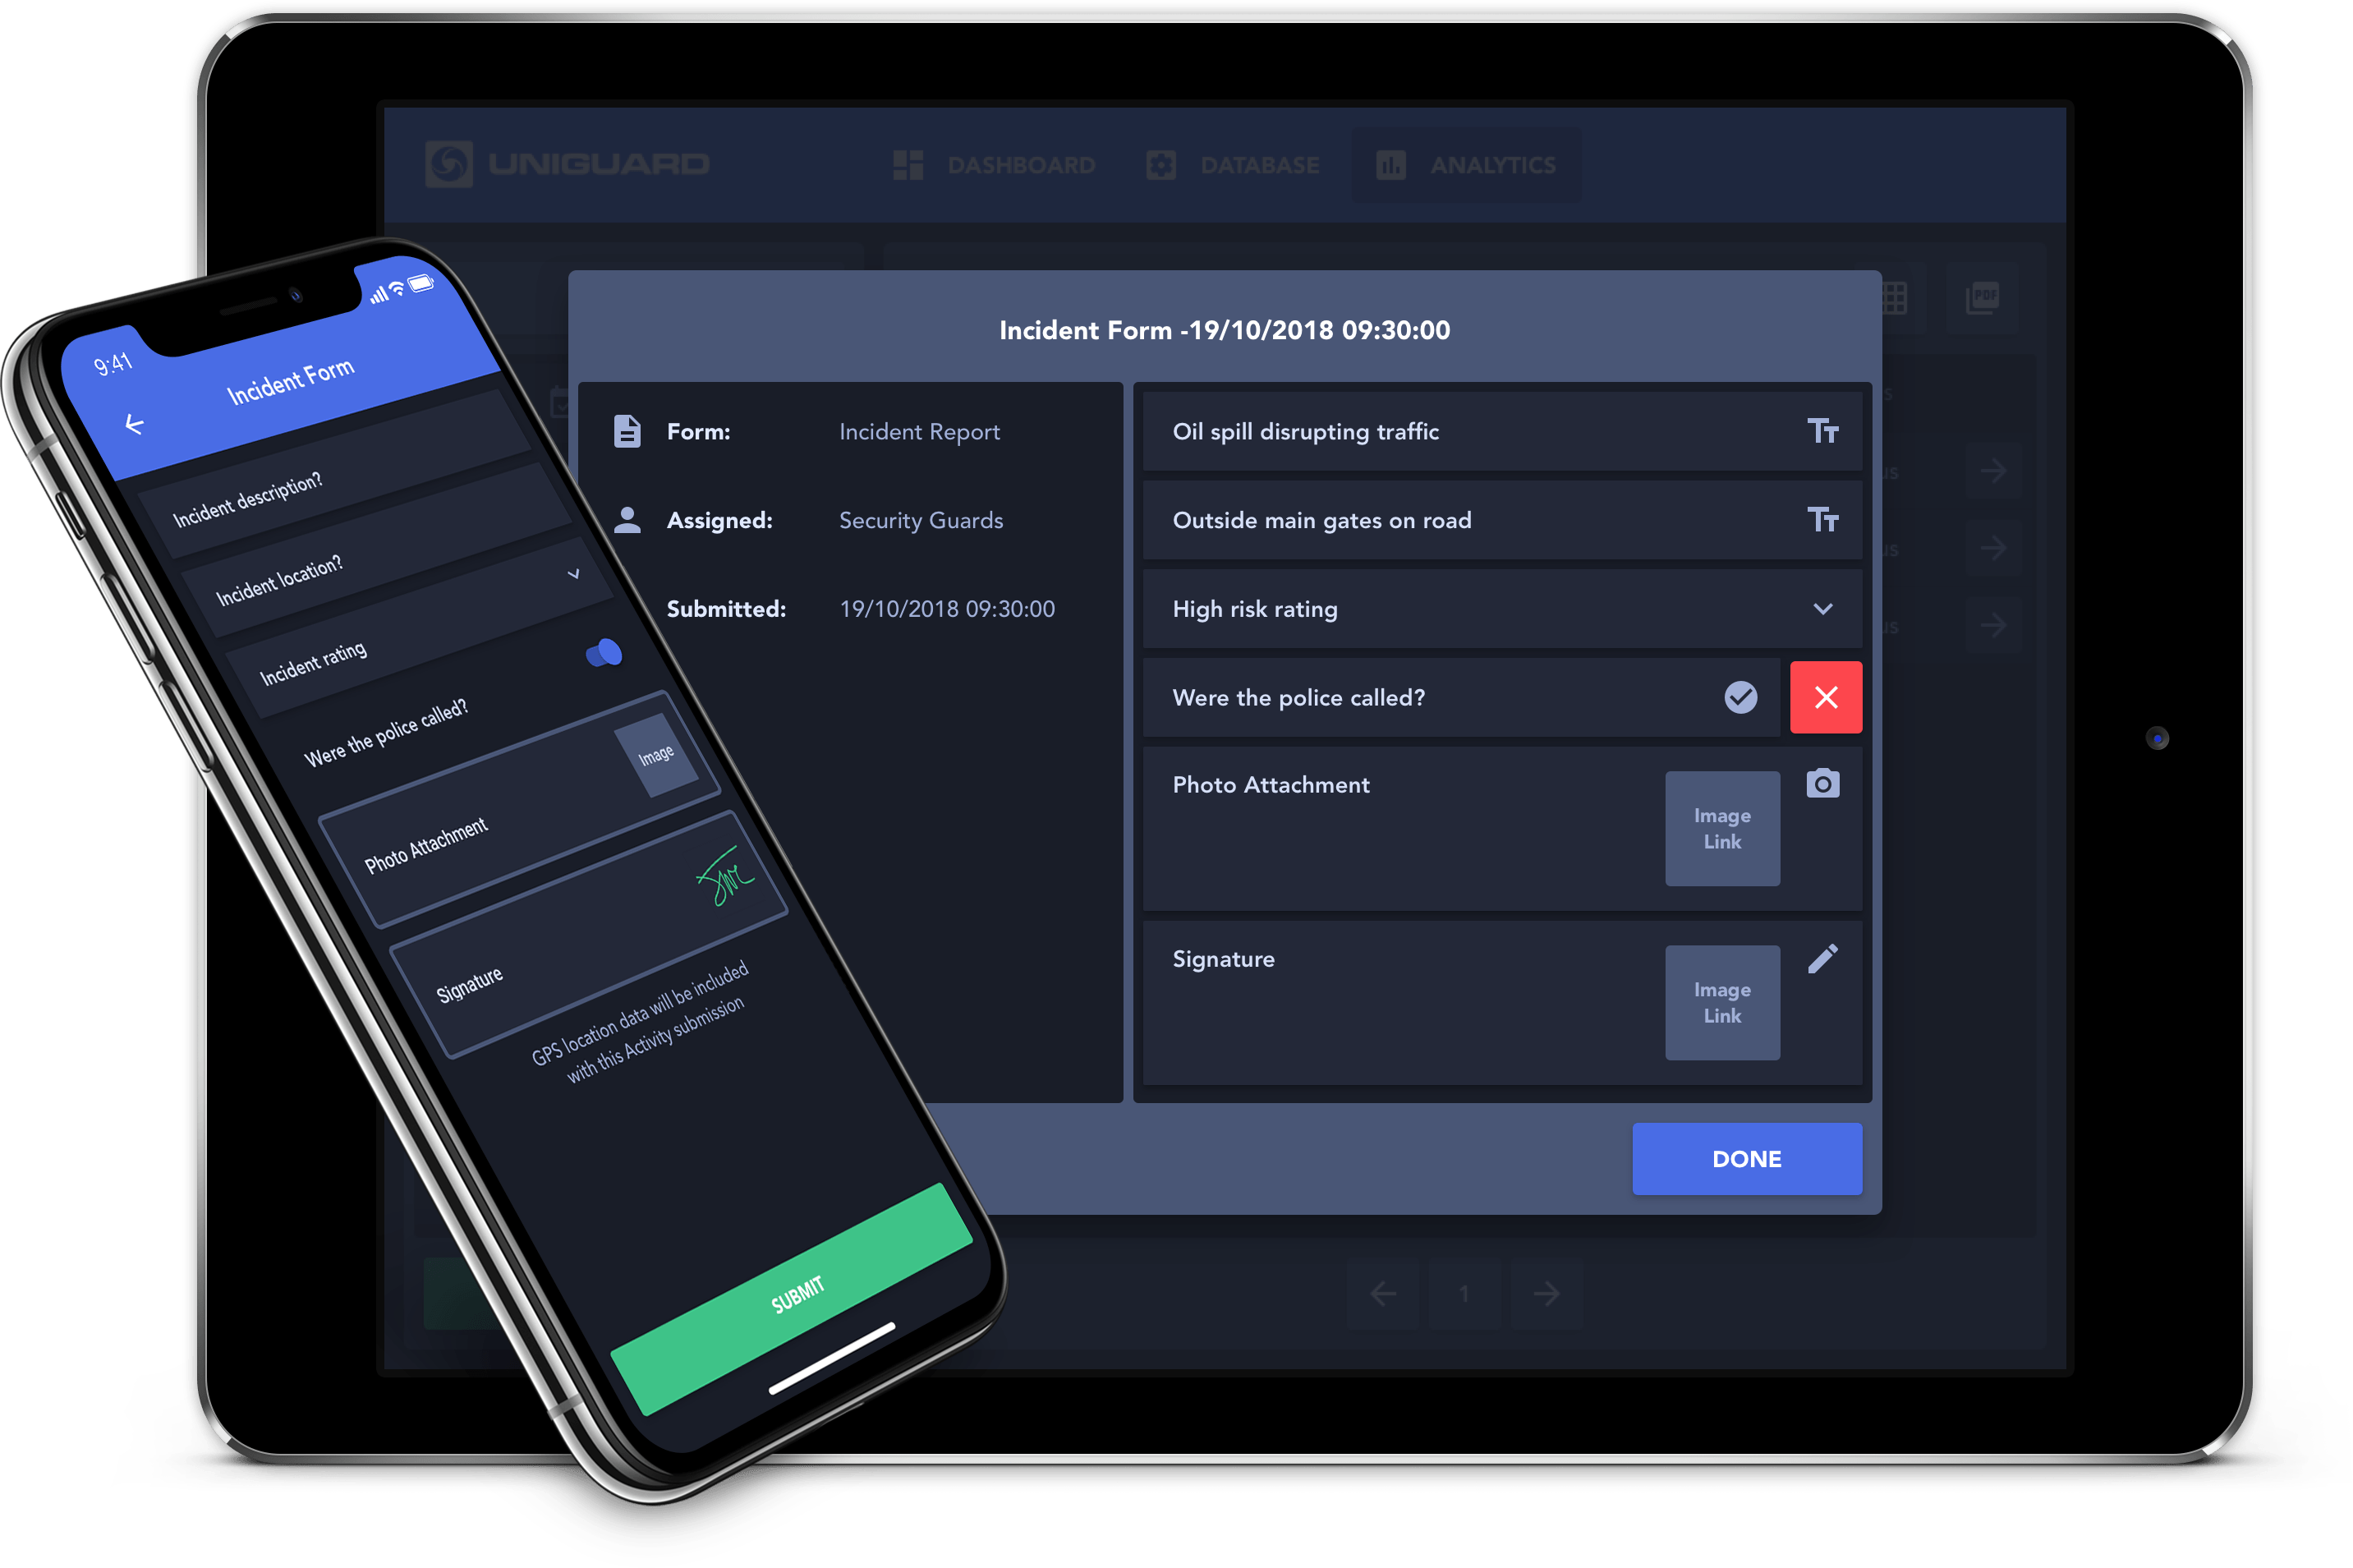 UniGuard Web & mobile Incident Form